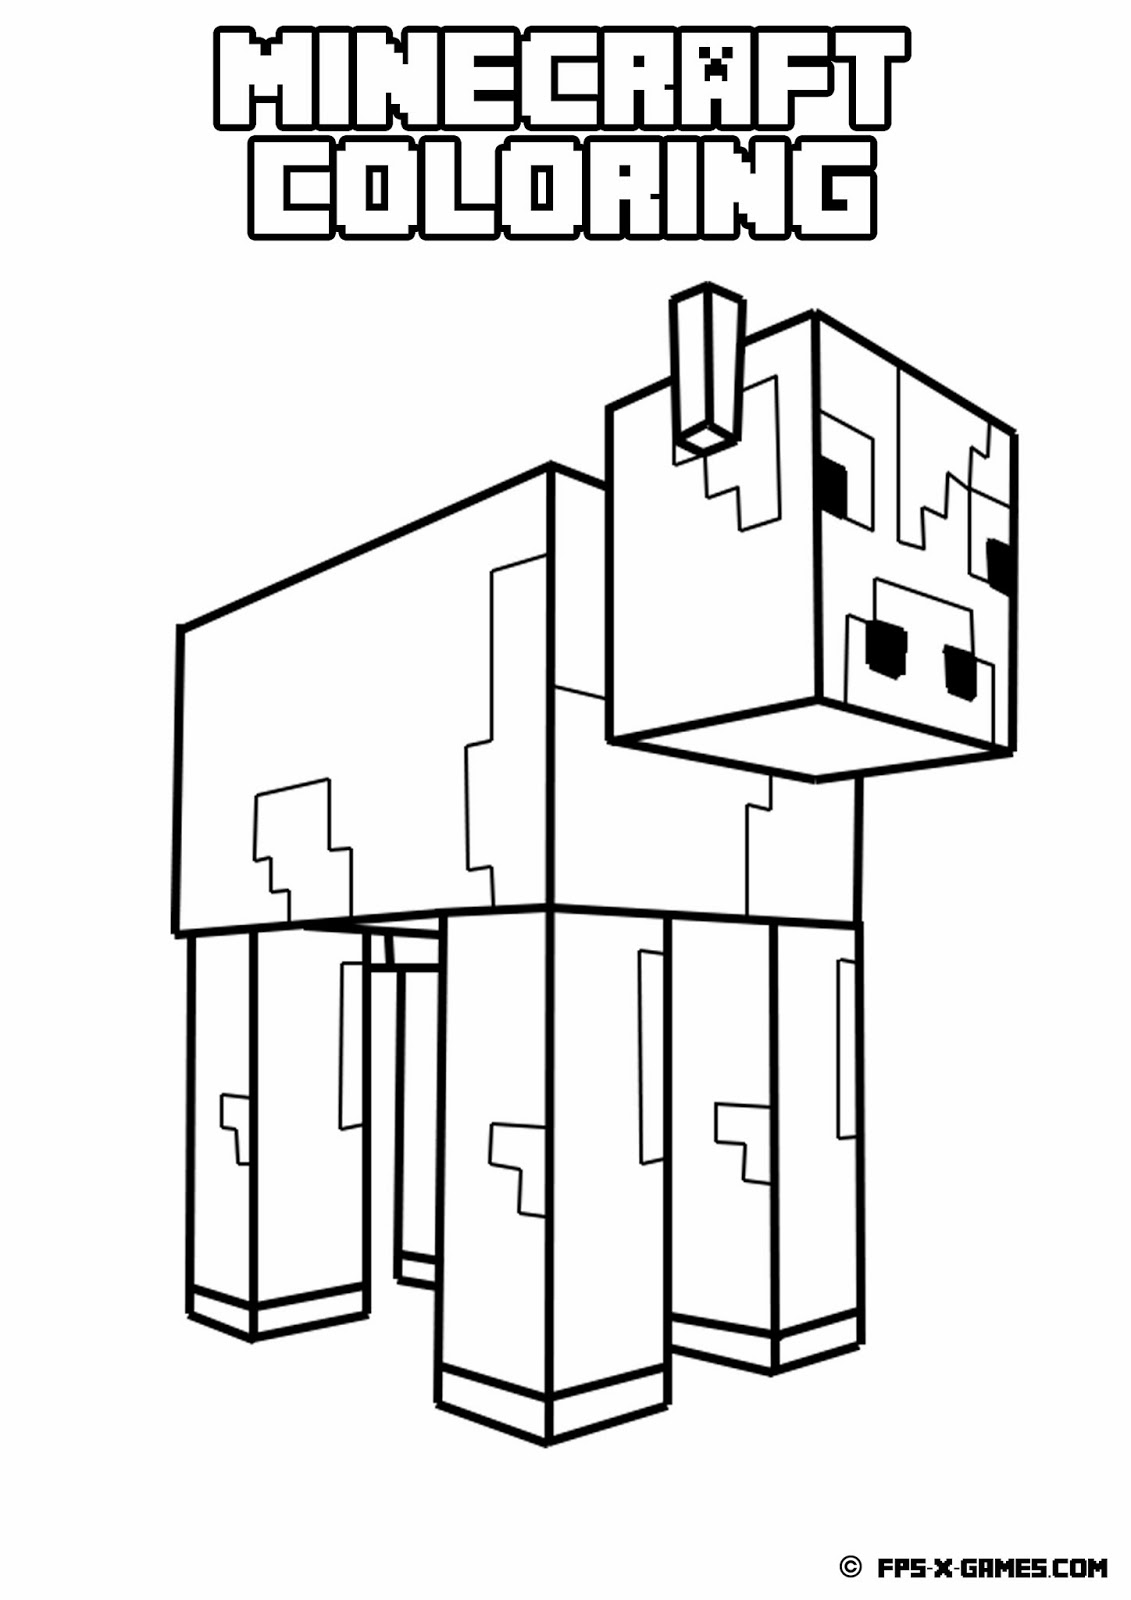 Printable minecraft coloring cow for Free printable minecraft coloring pages